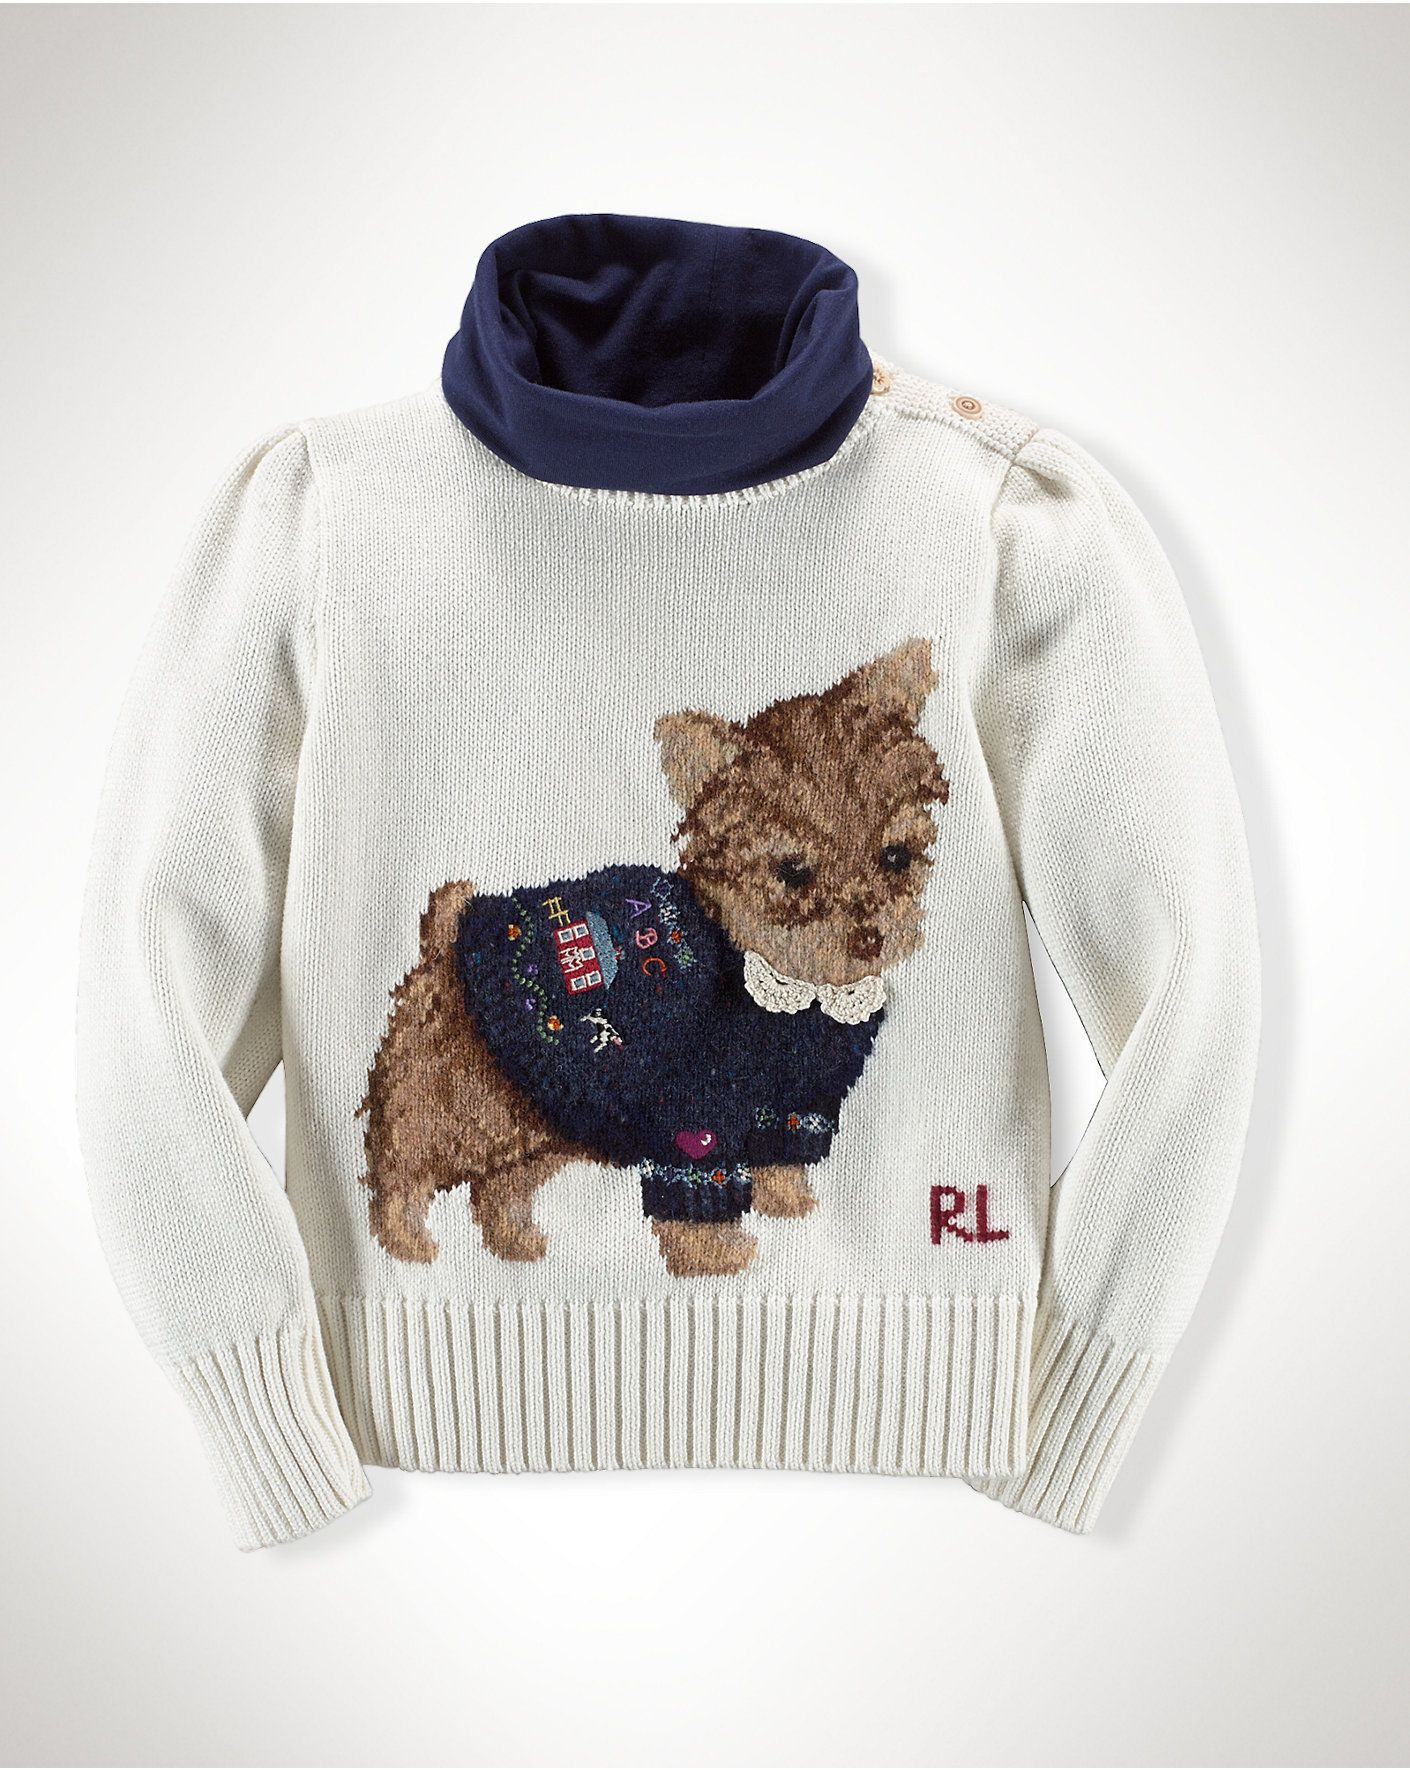 Sweet Dog Sweater At Ralph Lauren Trend What Is On Sale Today